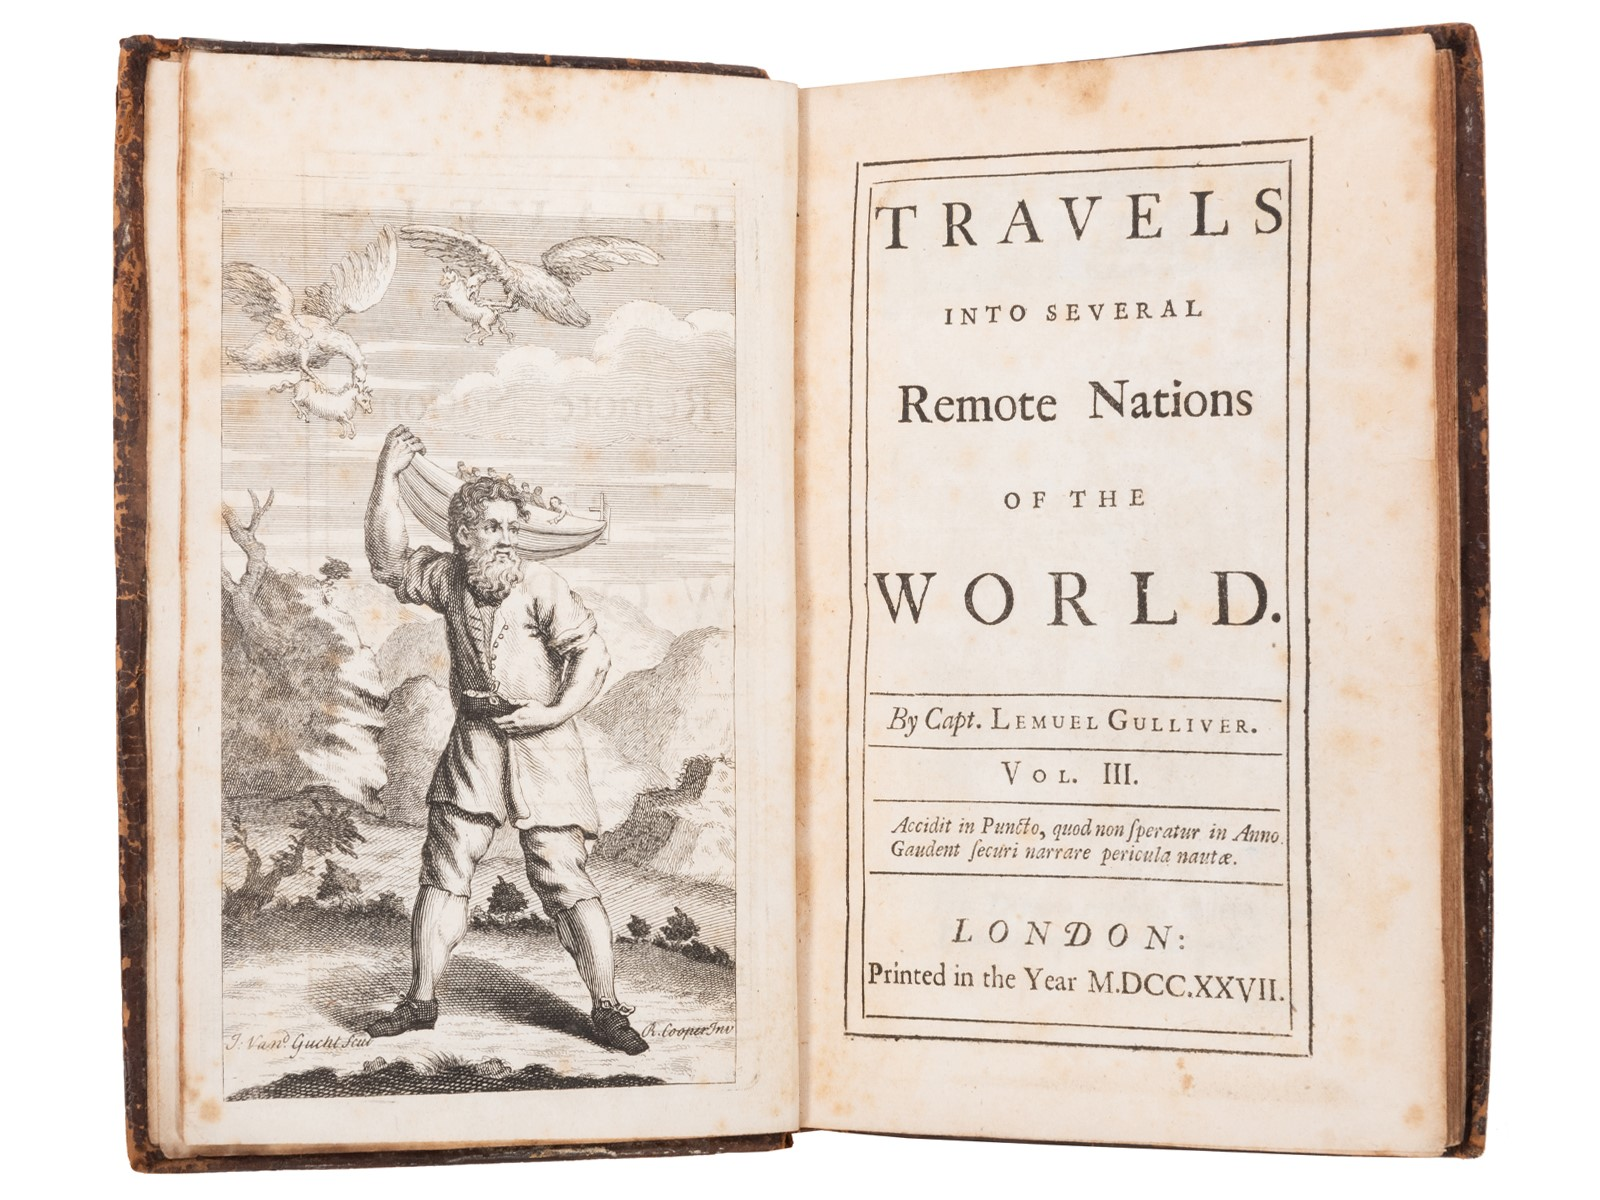 Jonathan Swift's Travels into Several Remote Nations of the World By Capt. Lemuel Gulliver. Vol. III